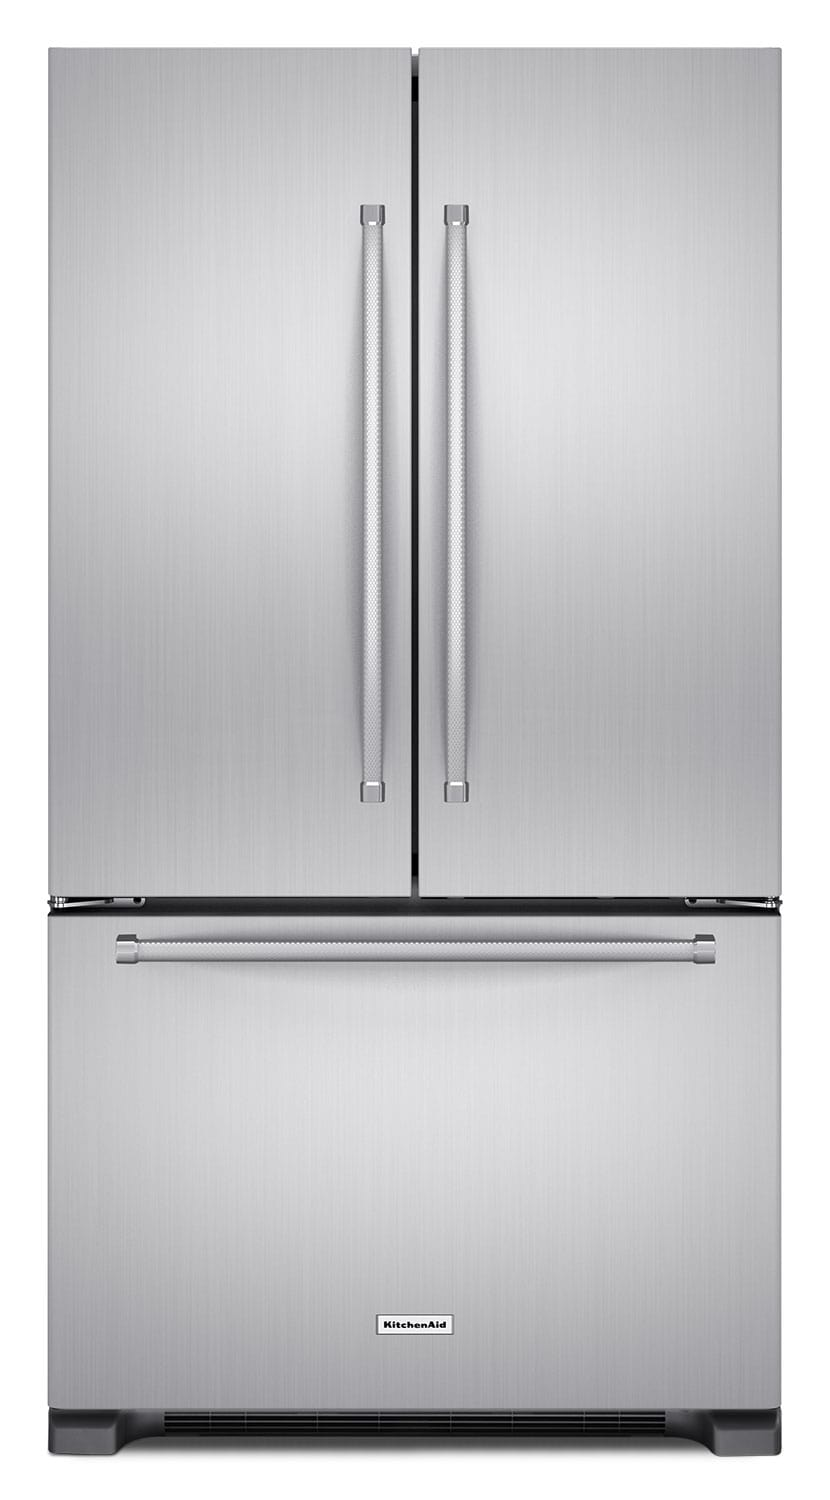 Refrigerators and Freezers - KitchenAid 22 Cu. Ft. French Door Refrigerator with Interior Dispenser - Stainless Steel